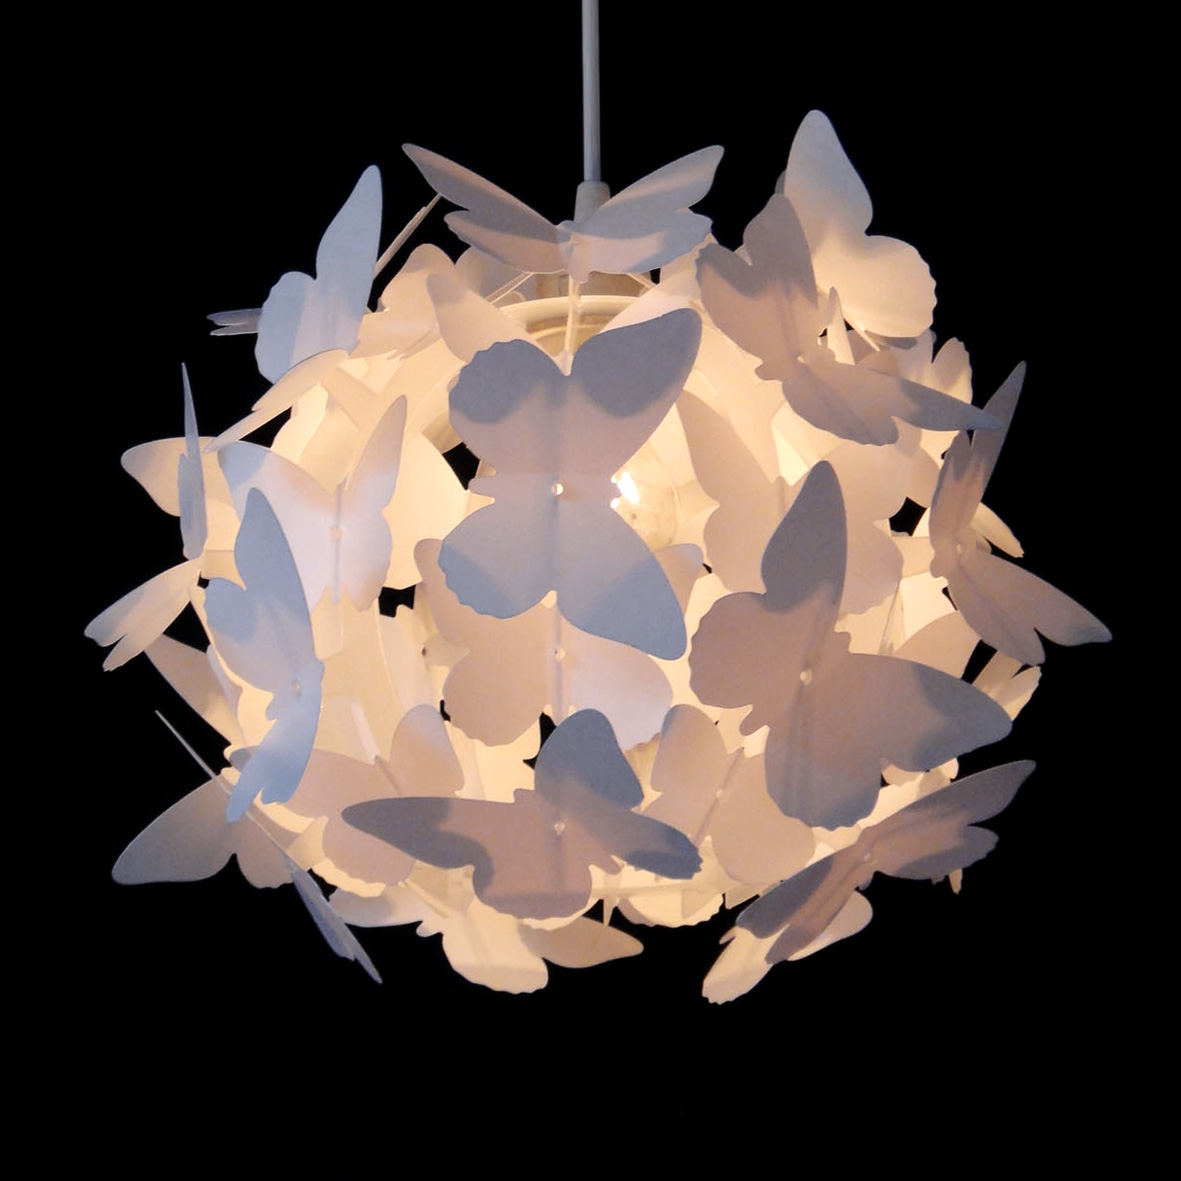 Modern white butterflies ceiling pendant light lamp shade uk company aloadofball Image collections